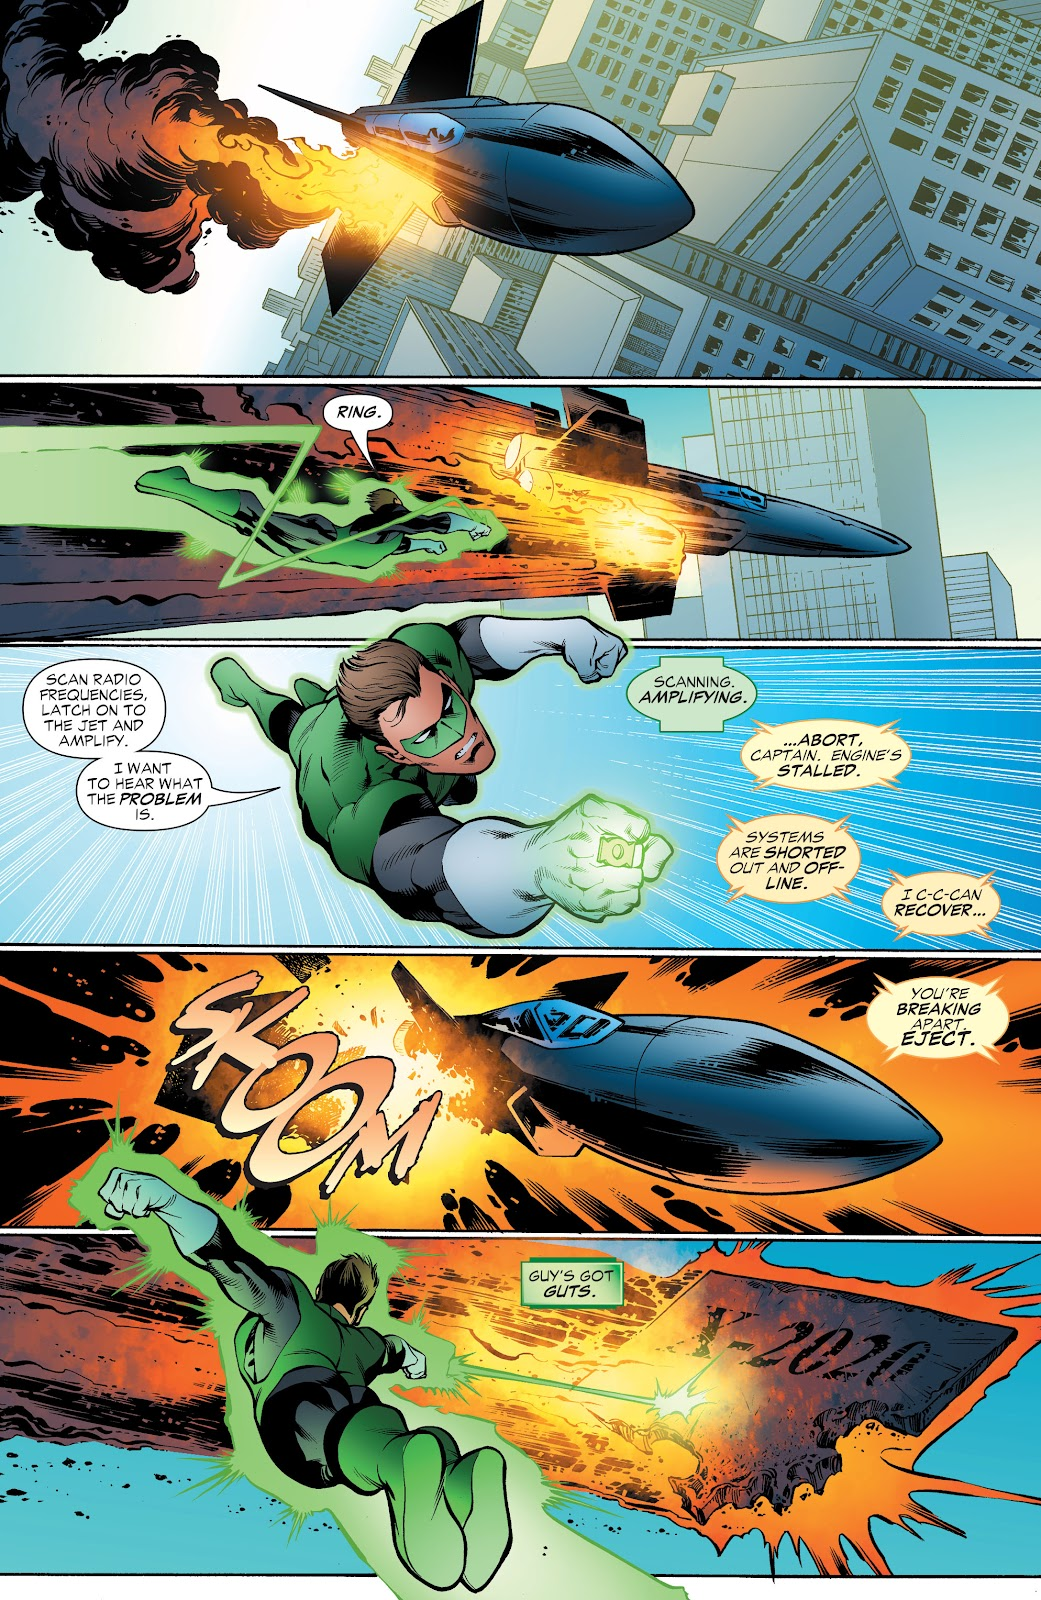 Read online Green Lantern by Geoff Johns comic -  Issue # TPB 1 (Part 4) - 18